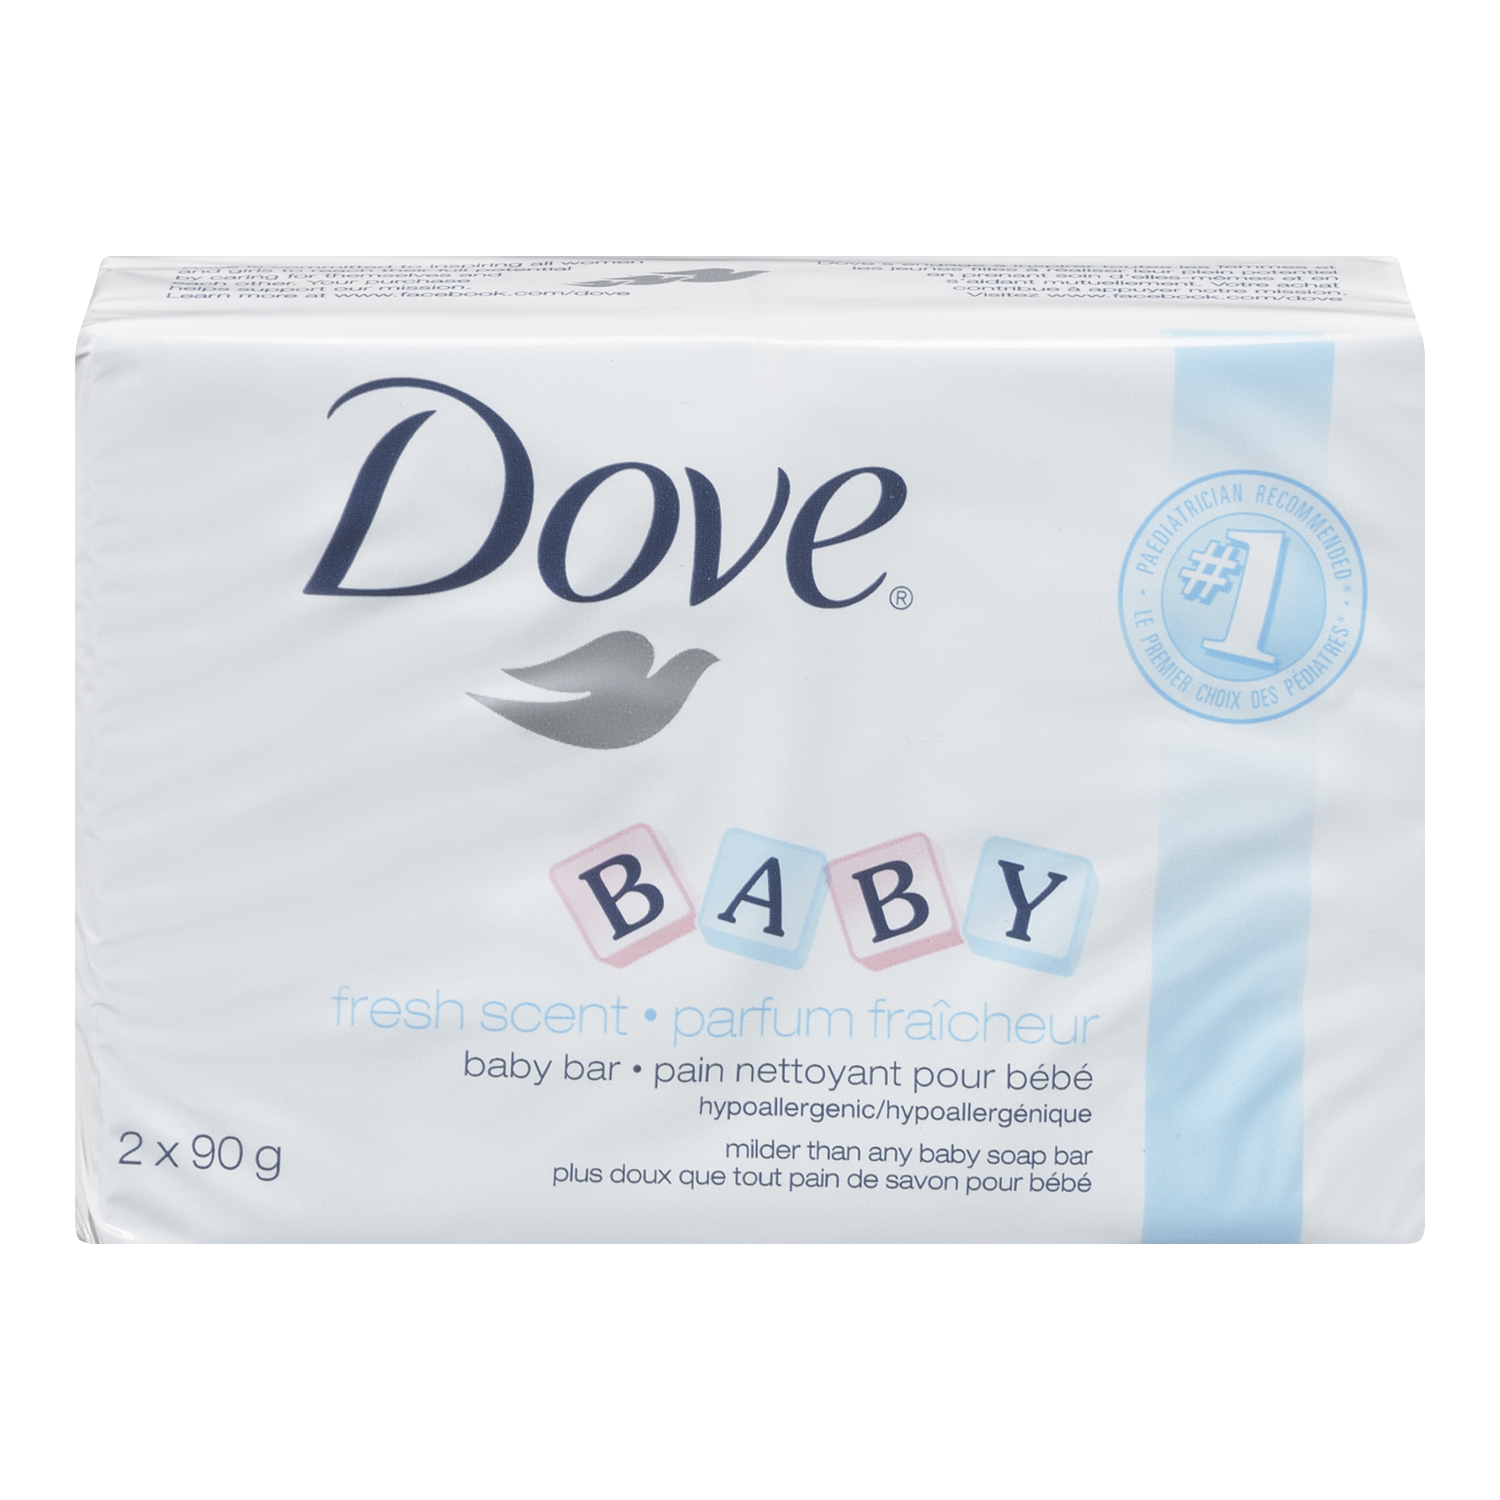 Dove Baby Fresh Scent Bar Reviews In Baby Bathing Soaps Amp Body Washes Chickadvisor